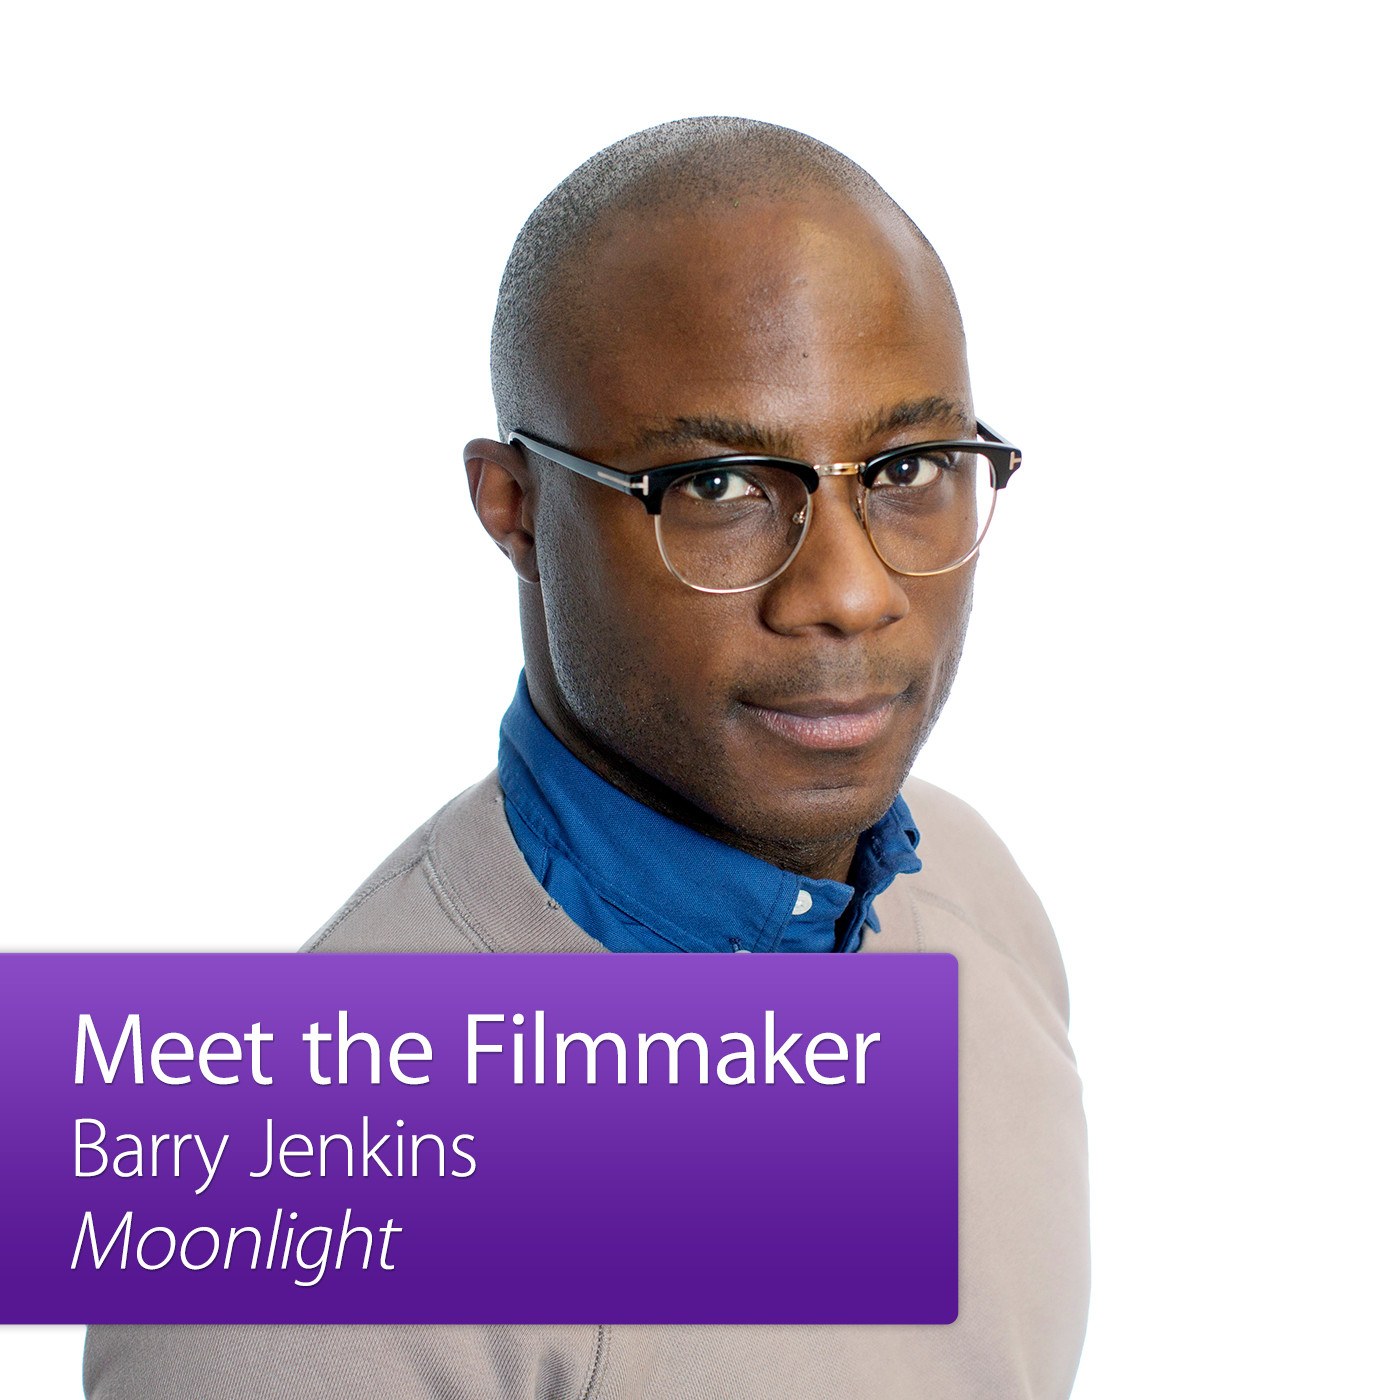 Moonlight: Meet the Filmmaker